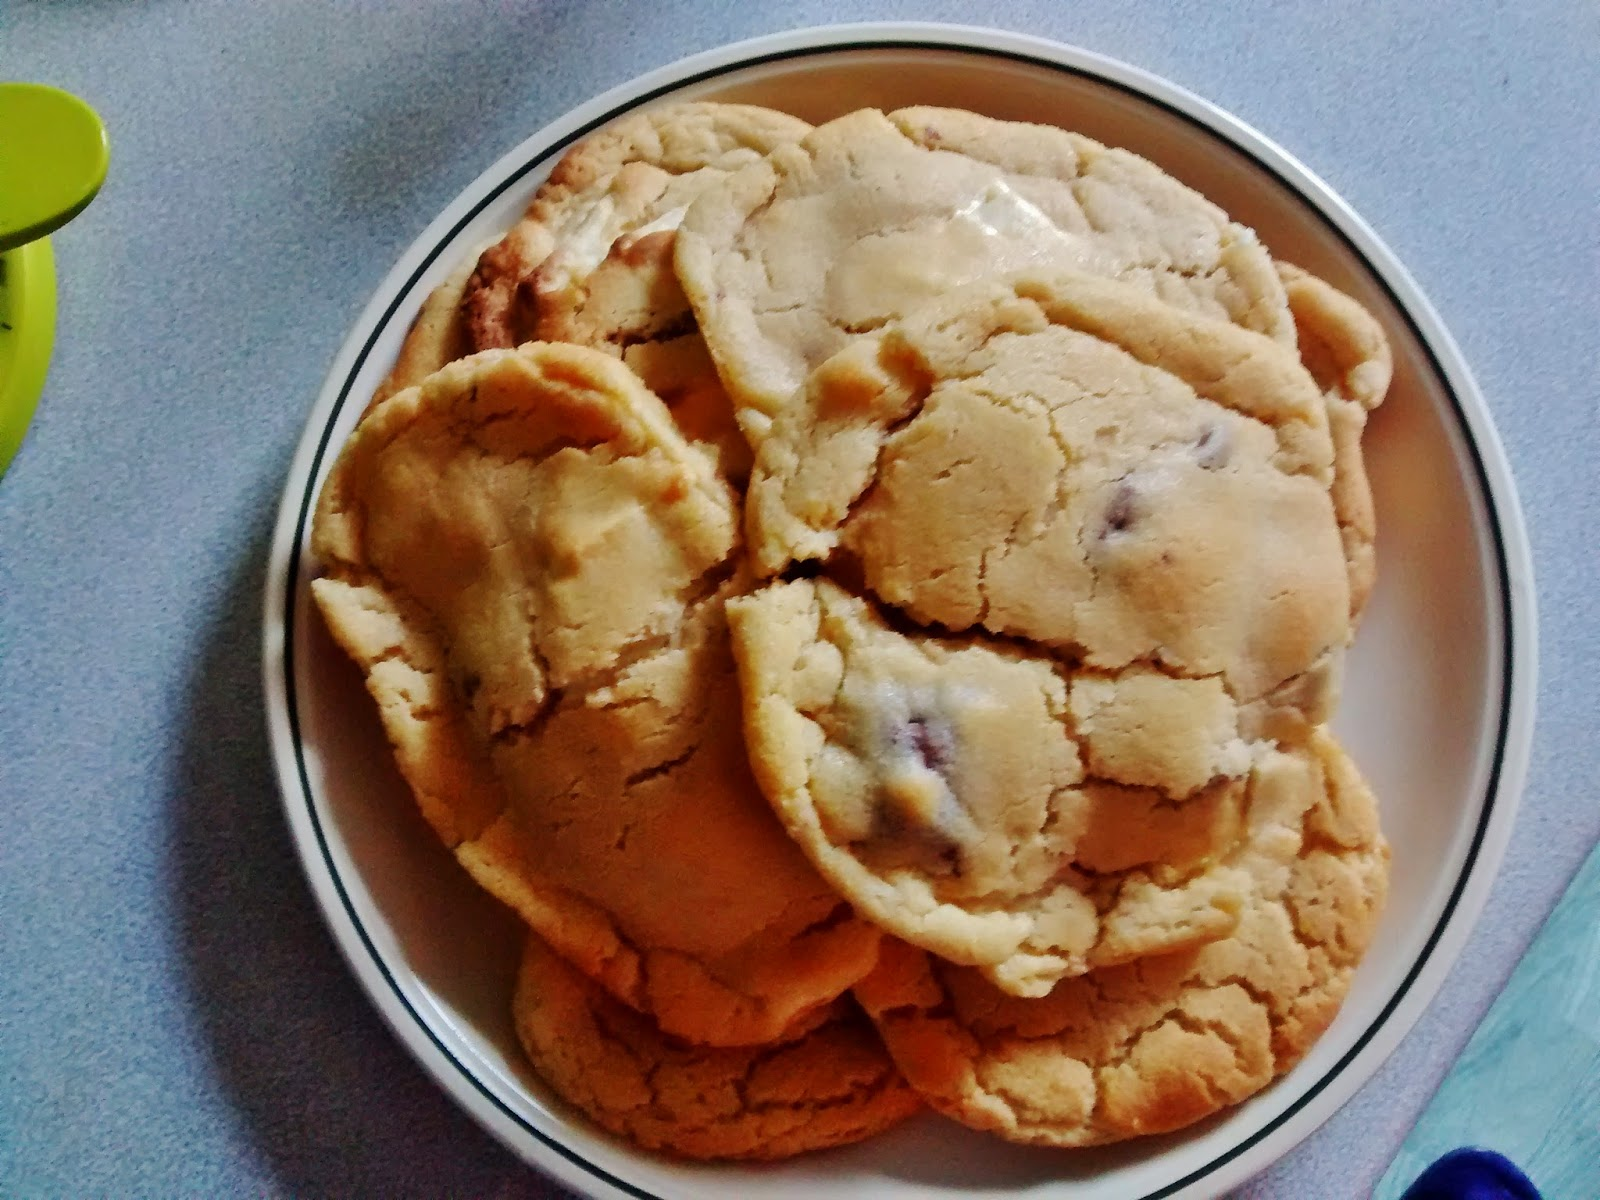 Tanya Burr Cookie Recipe